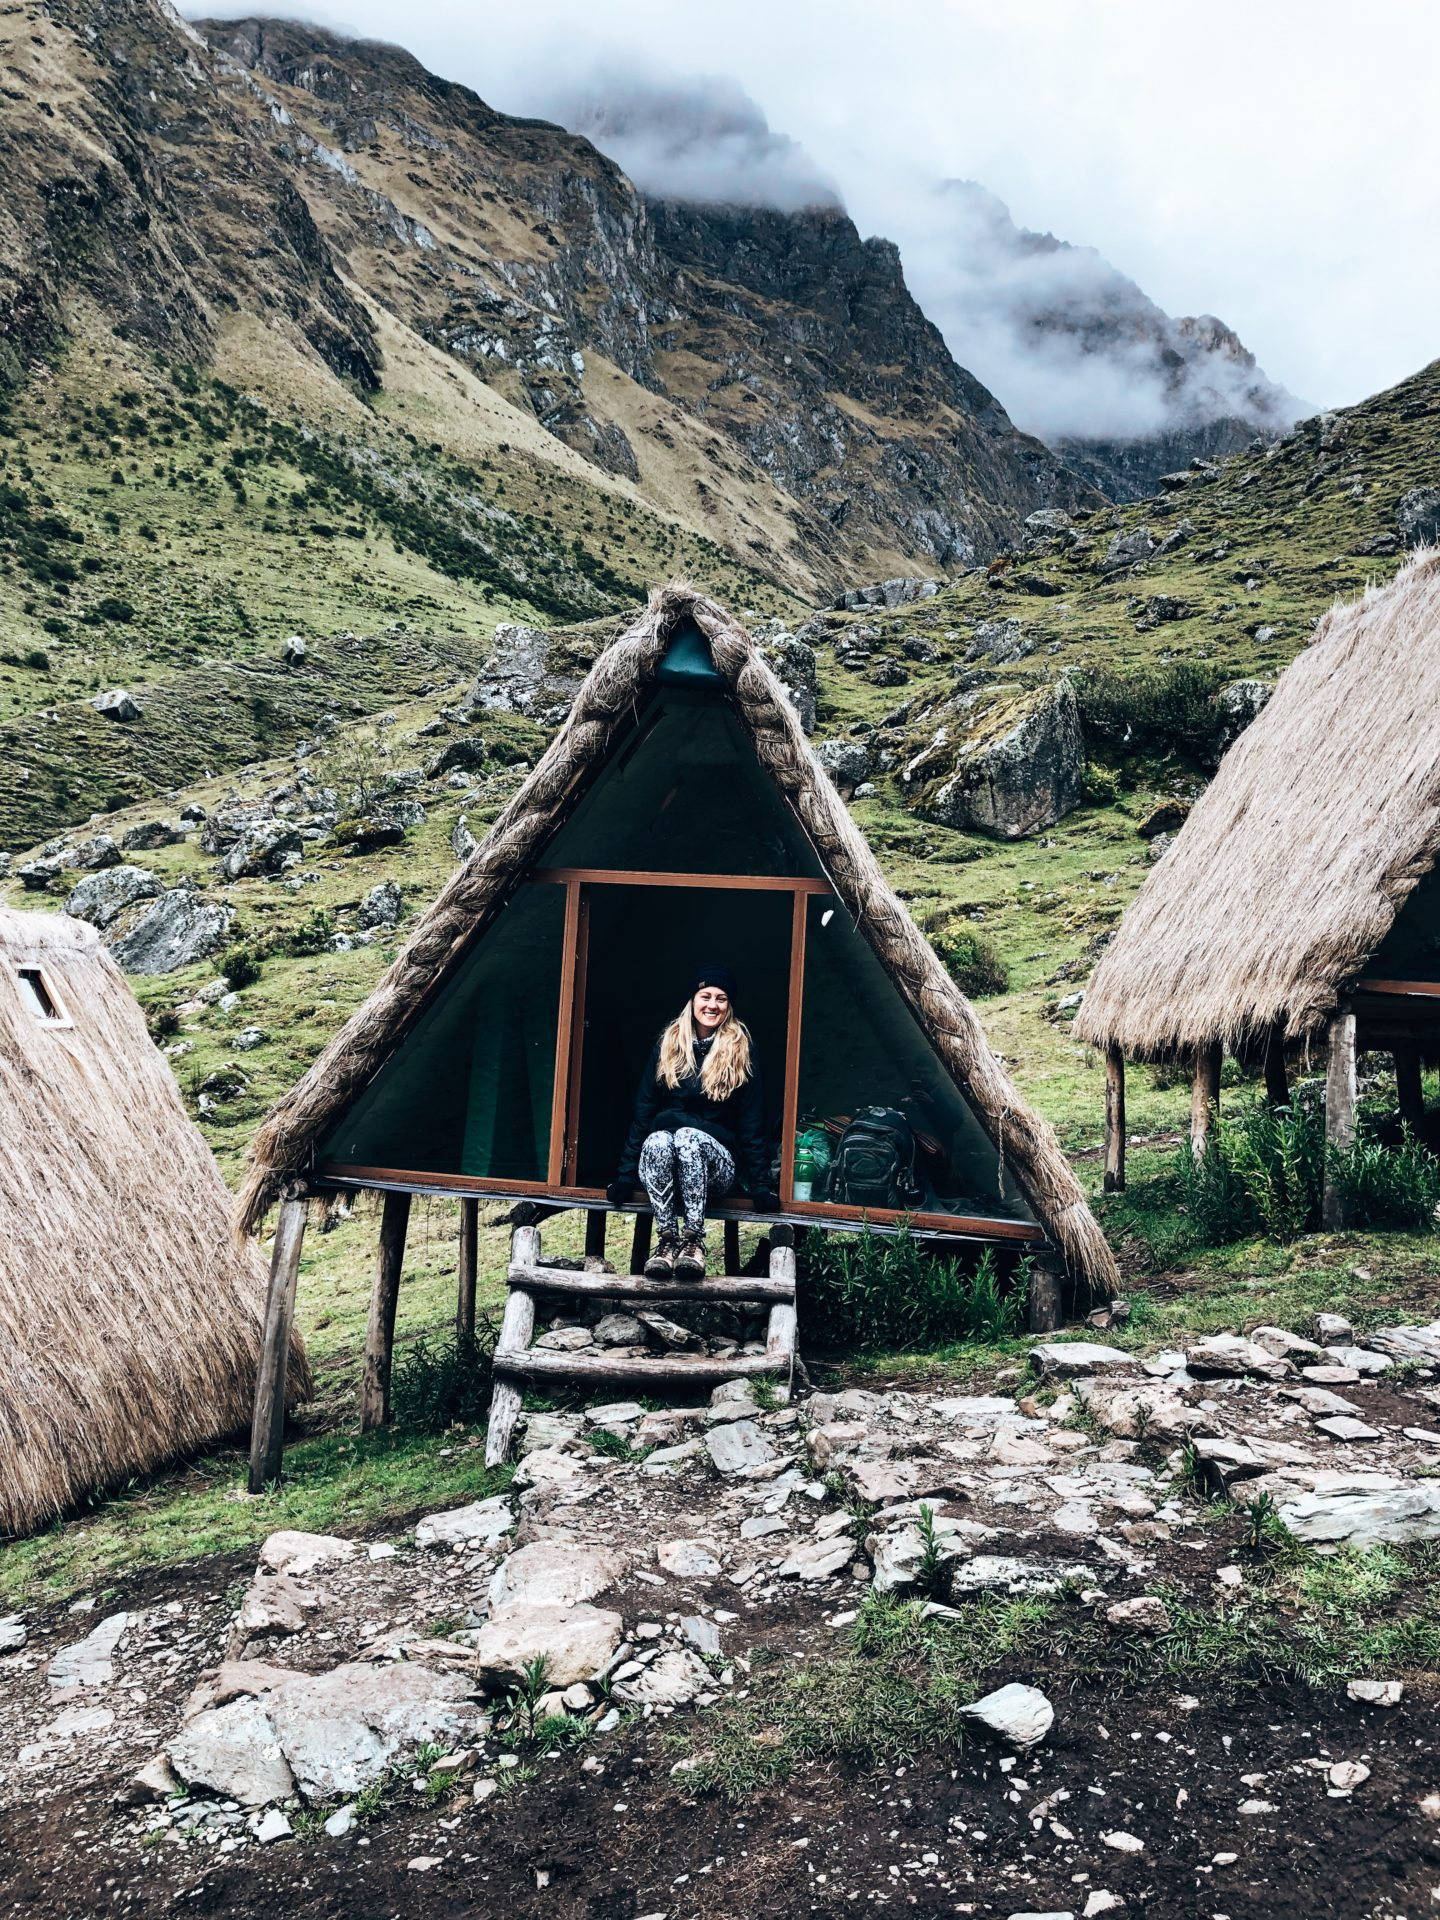 Unique huts that we slept in overnight on our first evening of the salkantay trek